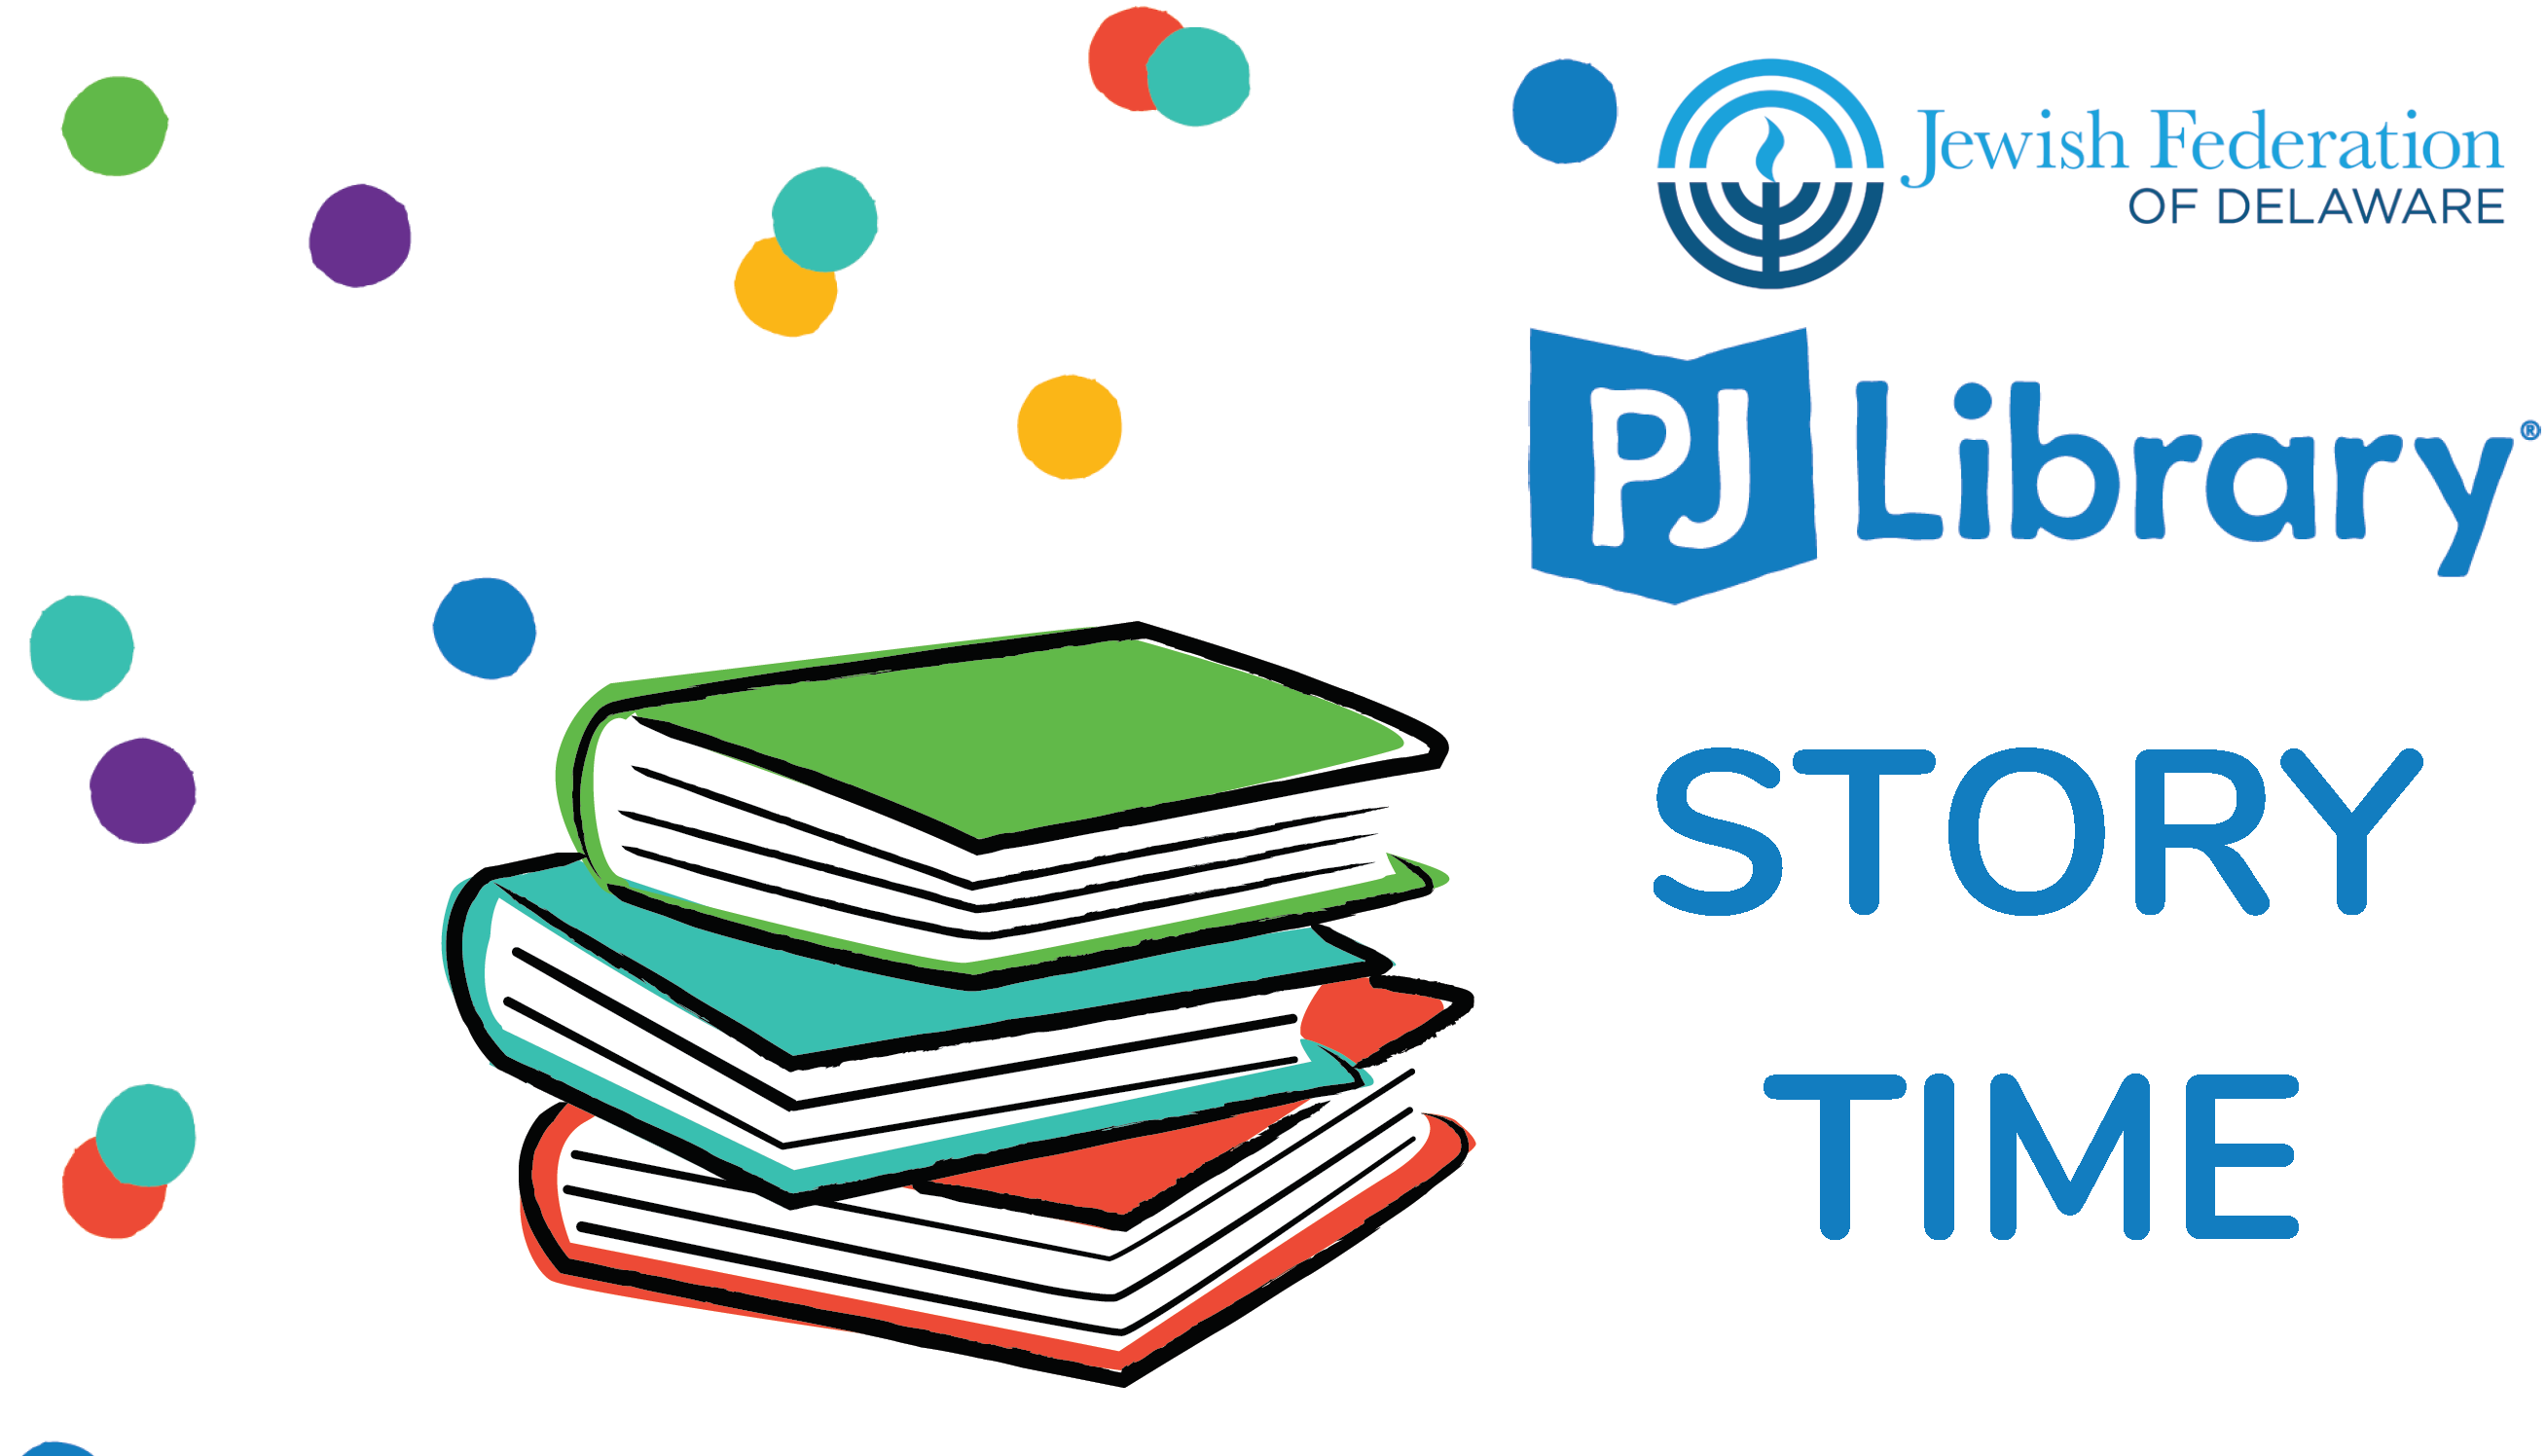 PJ Library Story Time